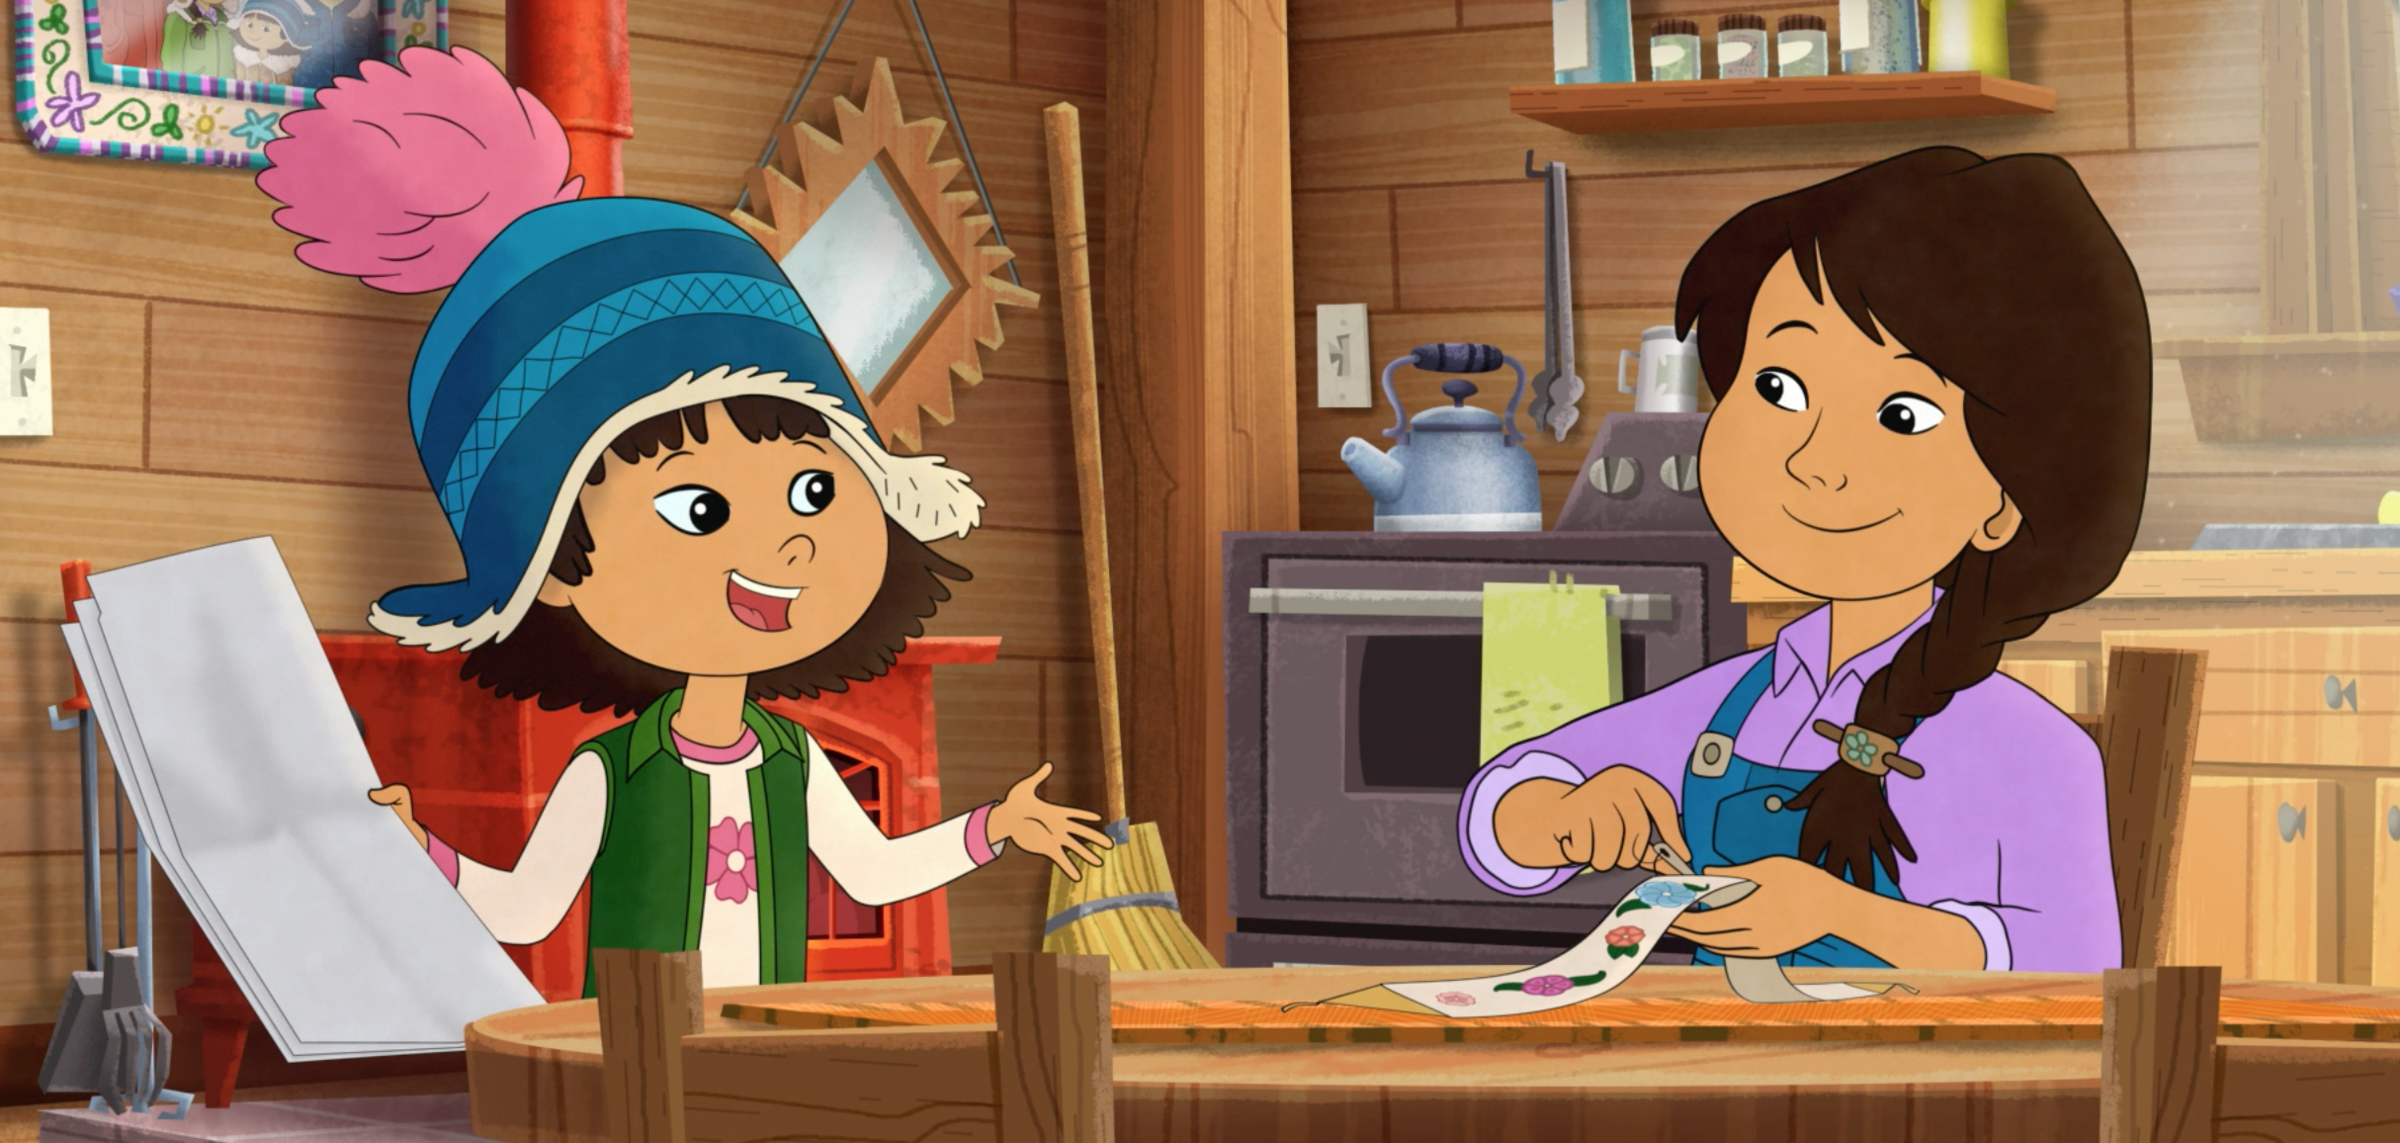 Now Starring In Children's Cartoons: Authentic Indigenous Characters